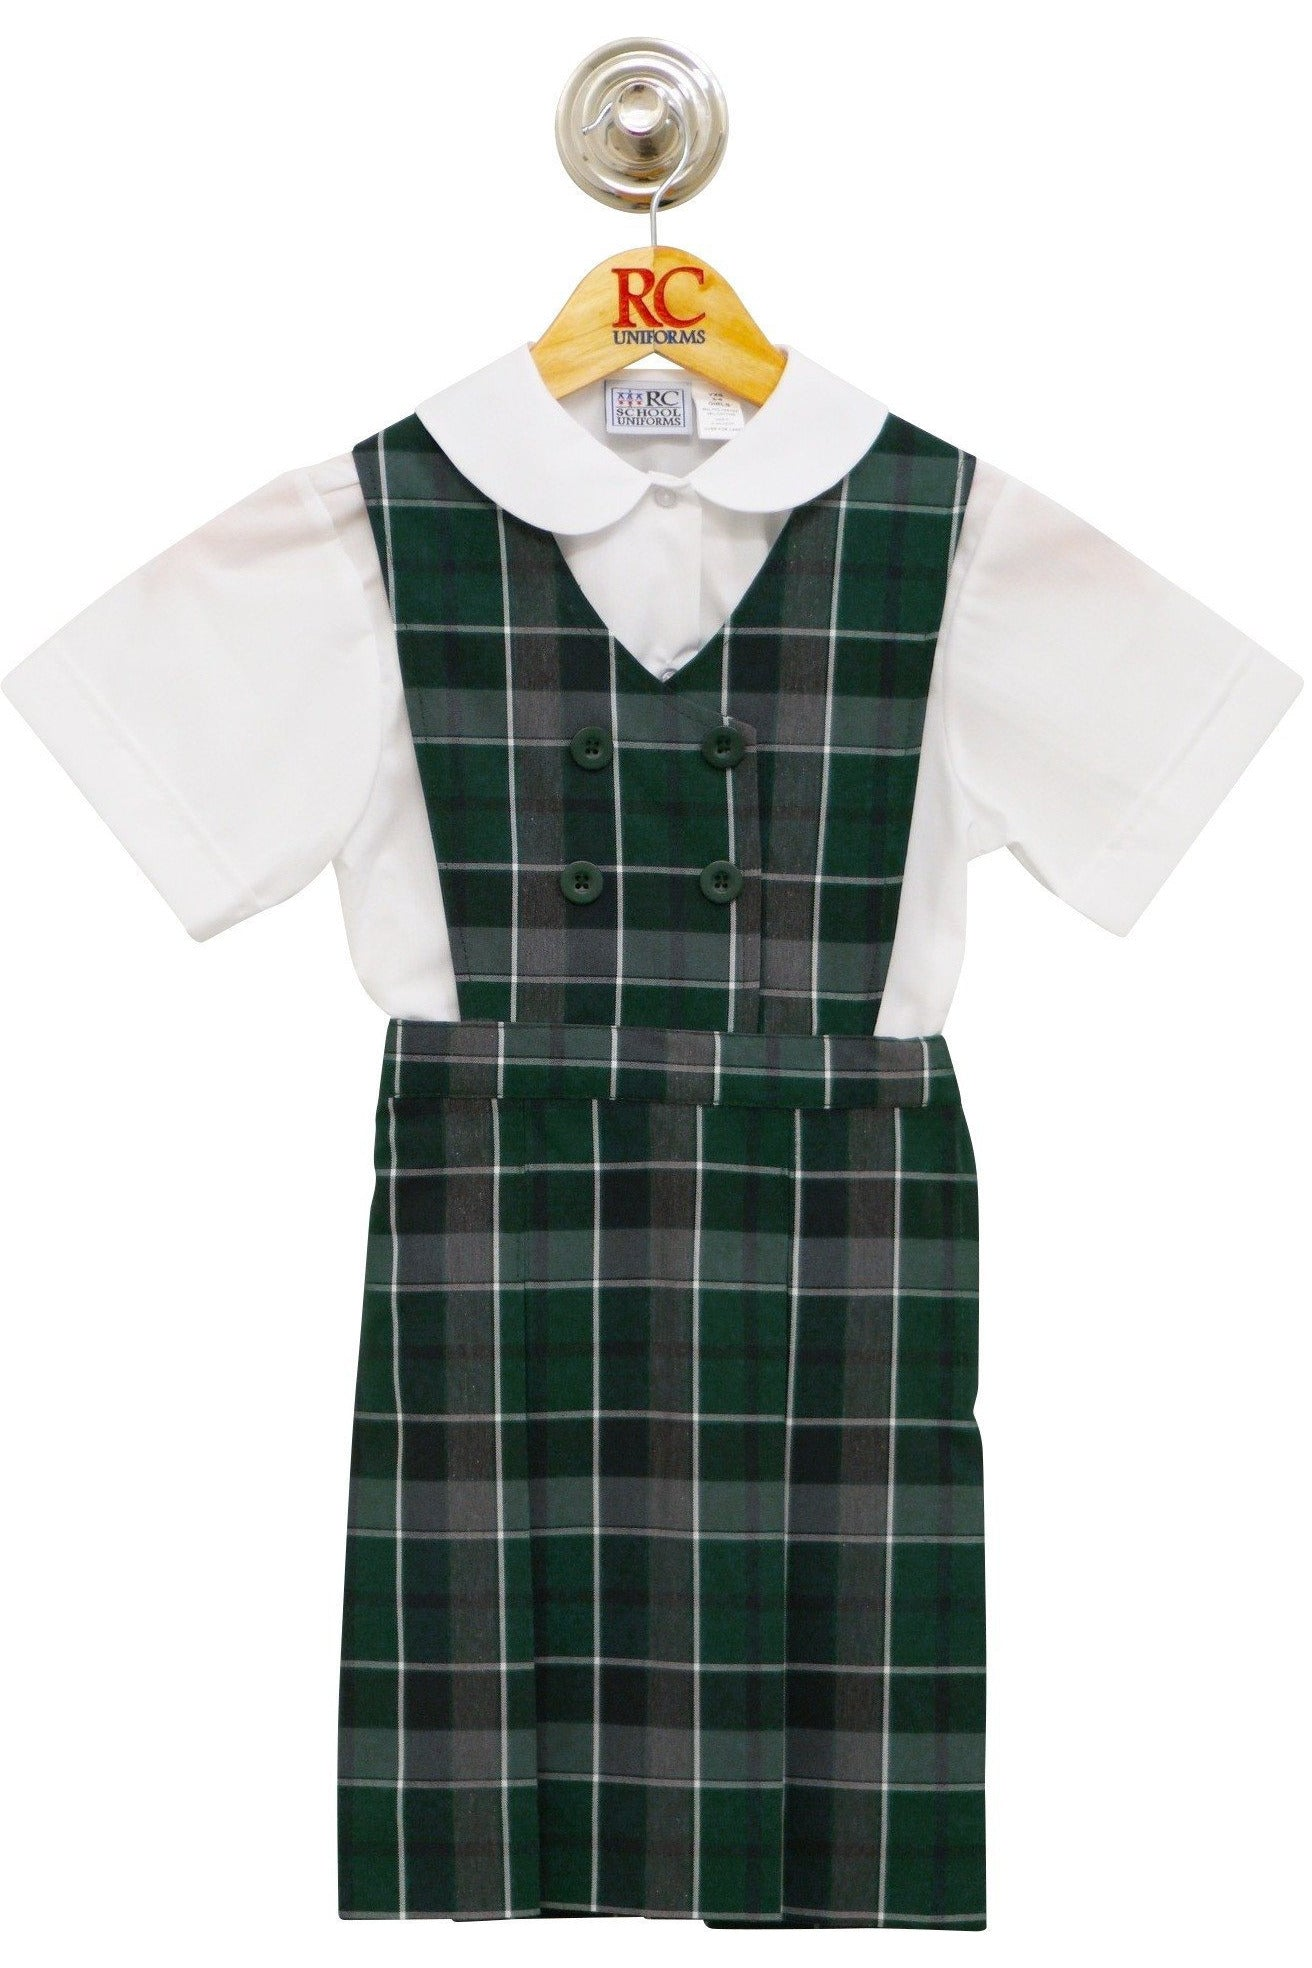 Plaid 75 Double-Breasted Jumper - RC Uniforms